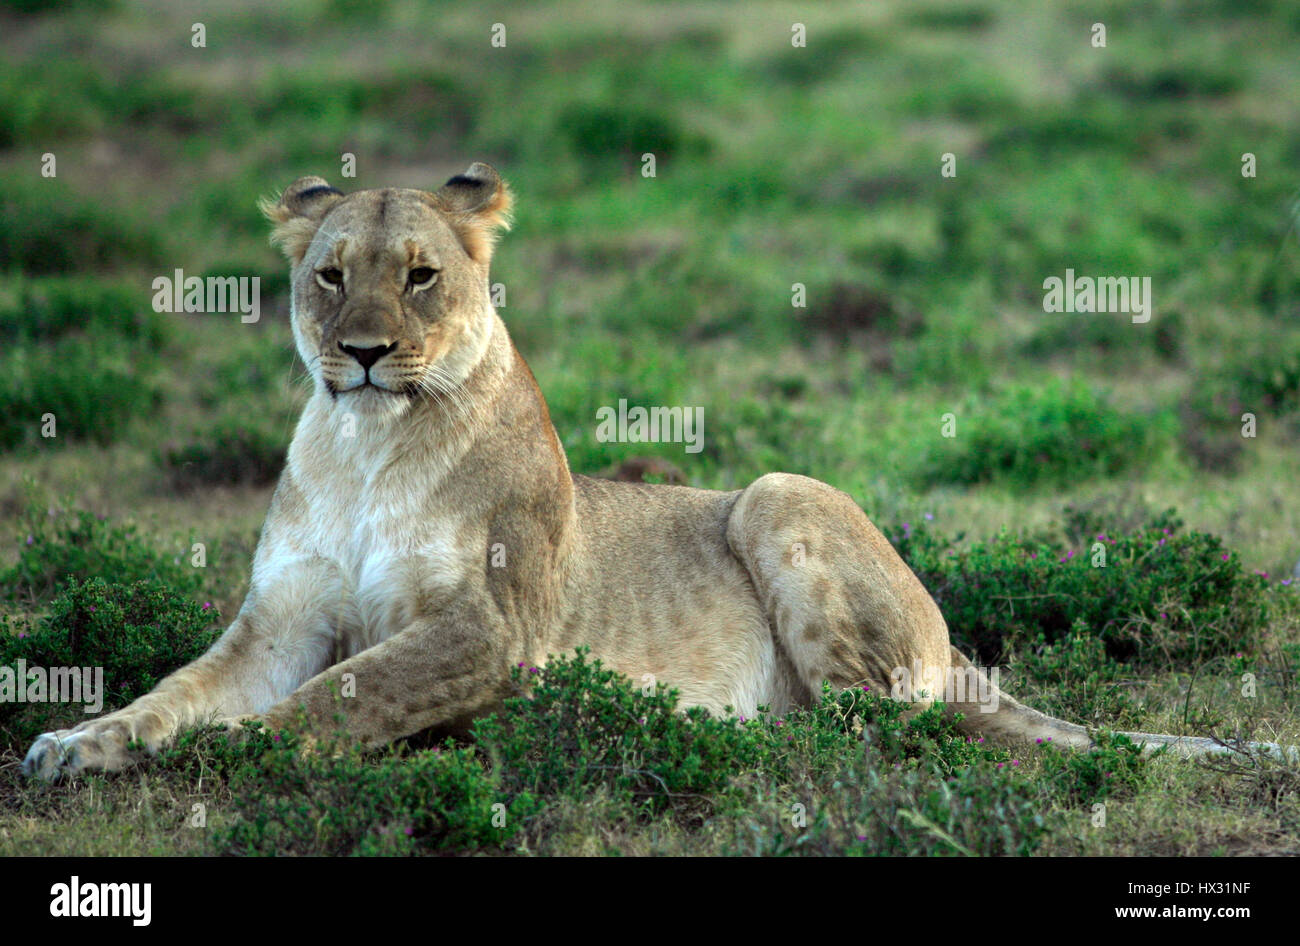 A lioness sits on the grass, during a safari, in a private game reserve in South Africa March 18, 2017. © John - Stock Image